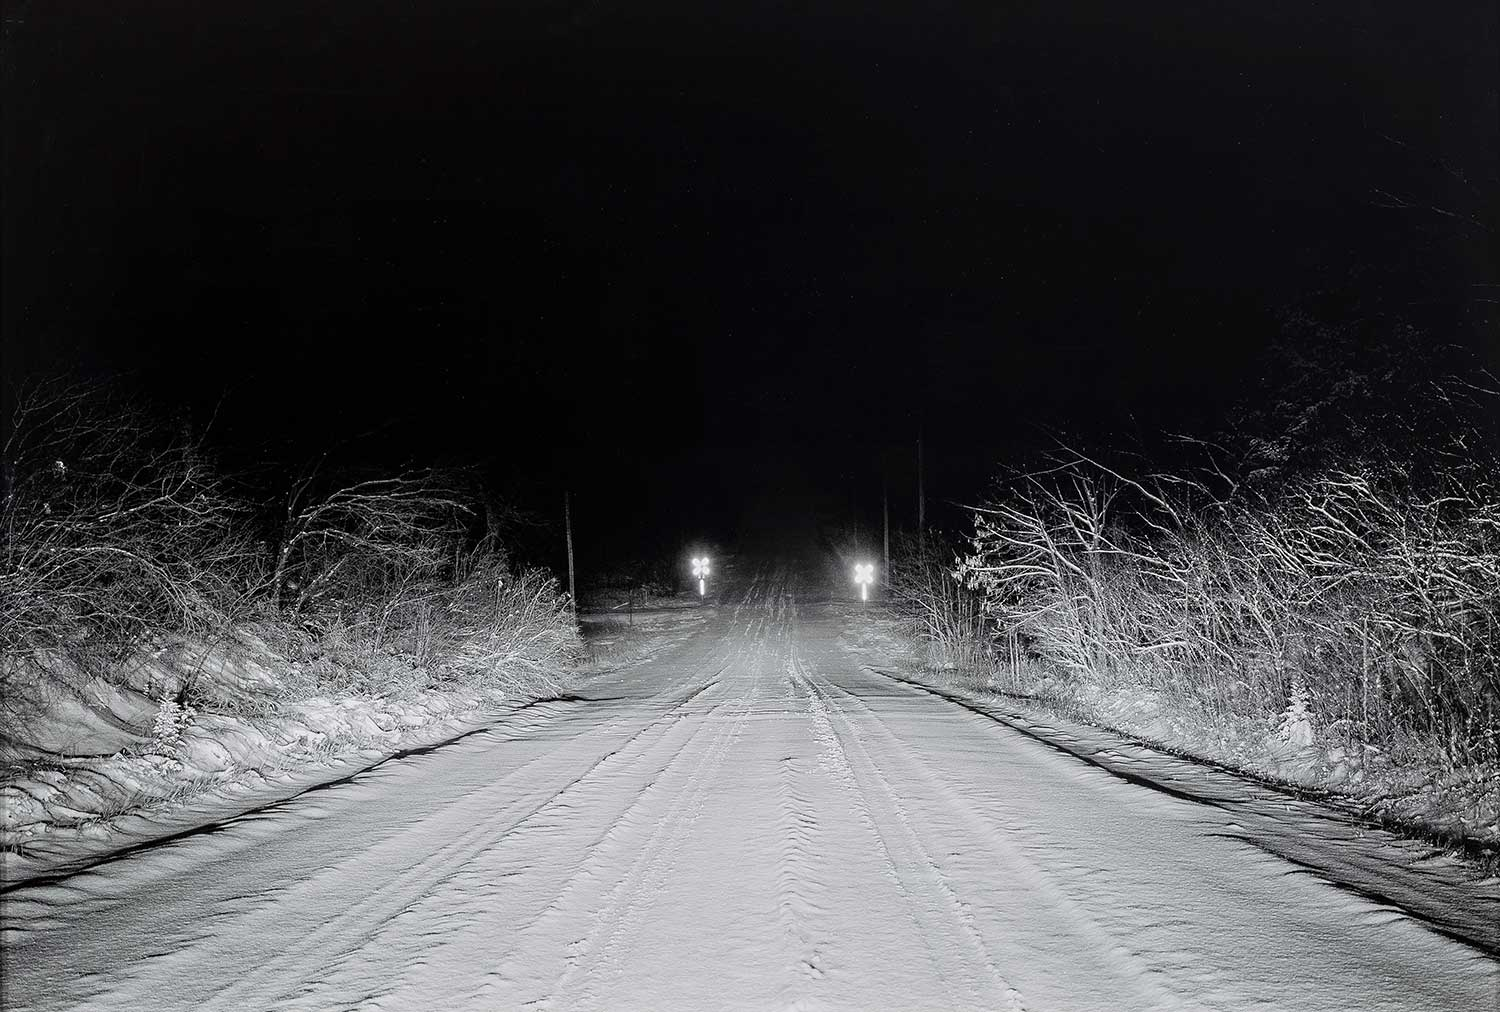 Christian Patterson ,24th Street Road (Road at Night), 2007